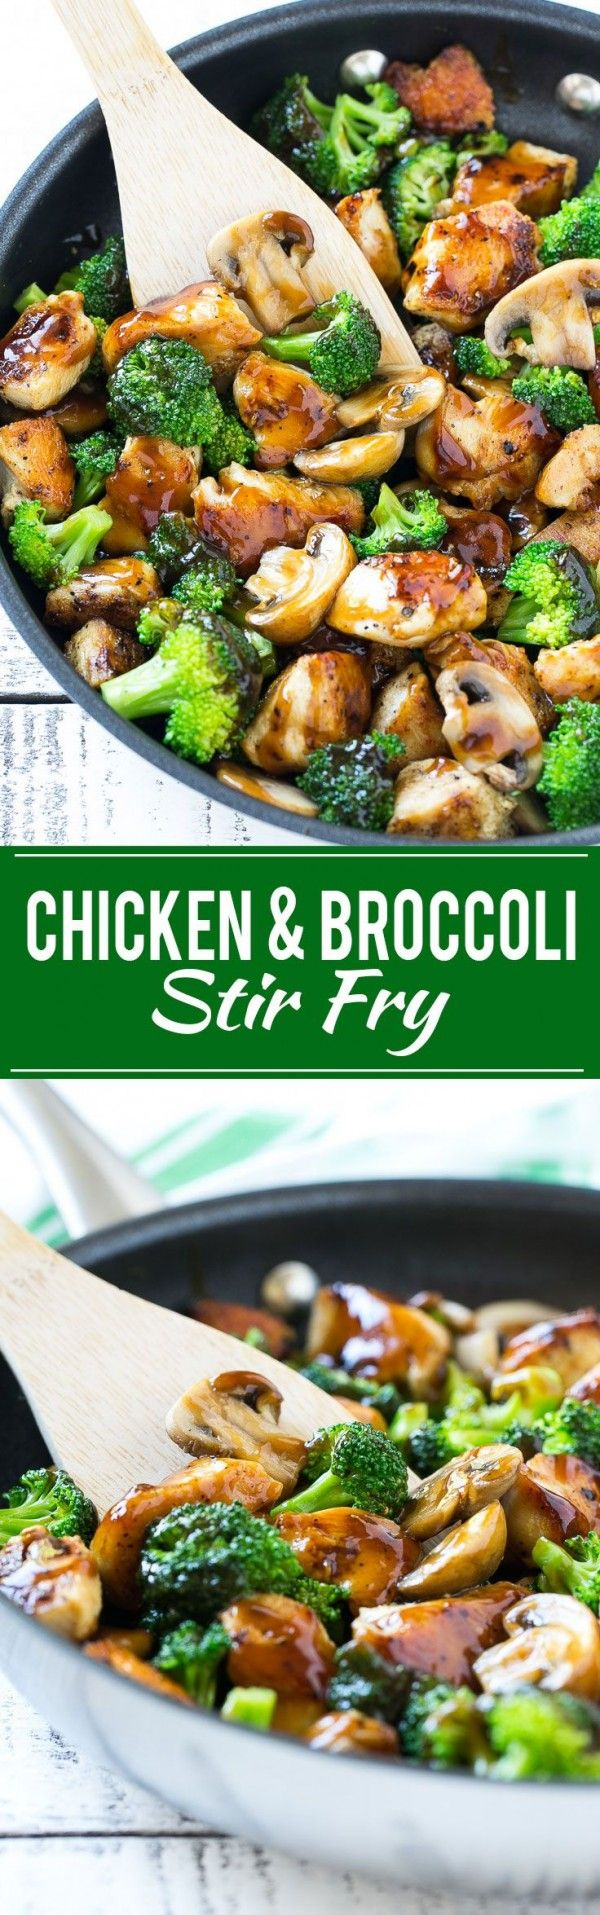 Get the recipe Chicken and Broccoli Stir Fry @recipes_to_go